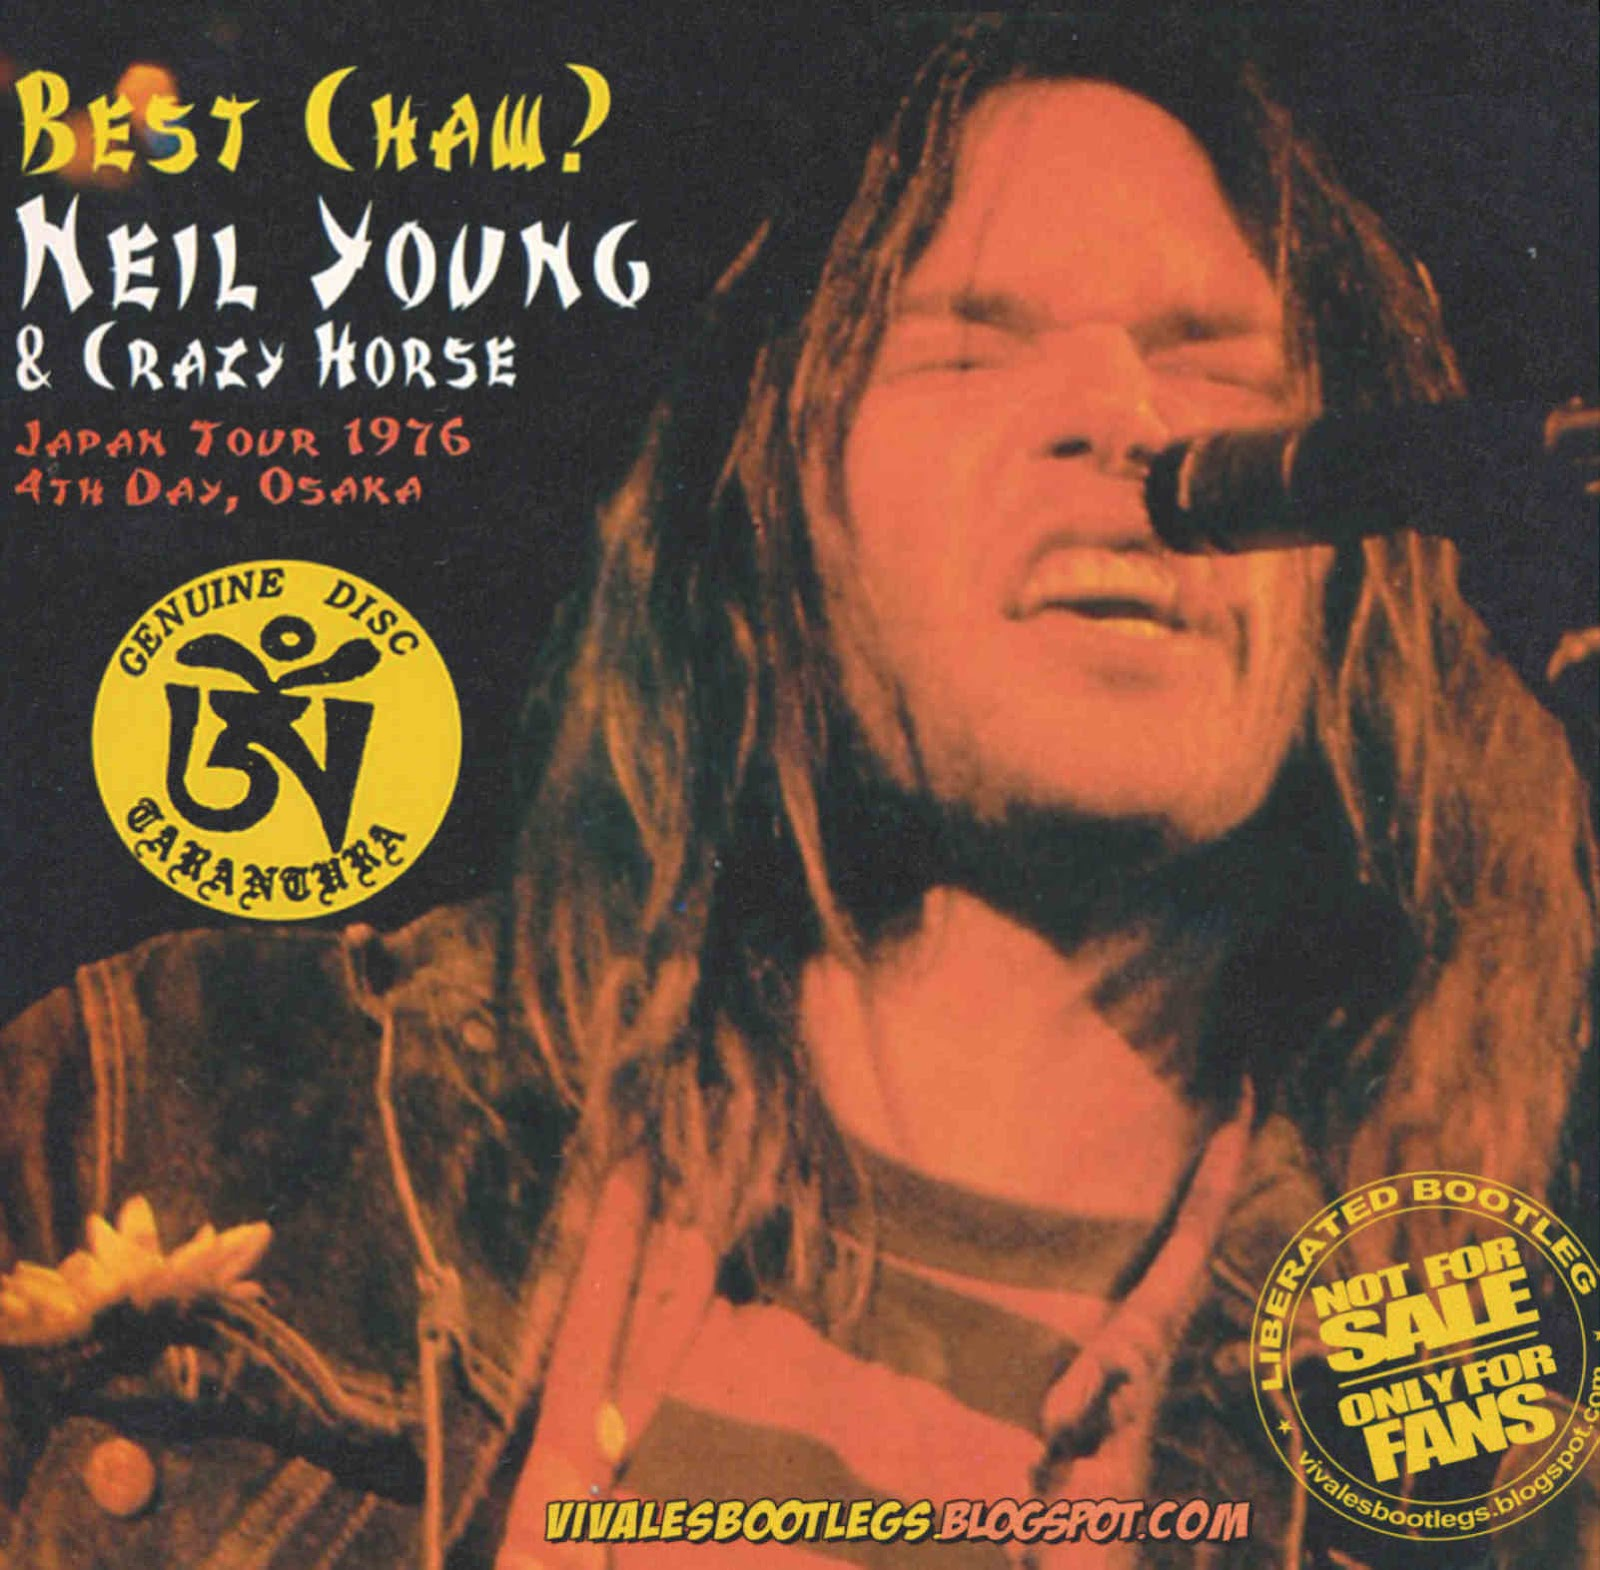 Neil Young & Crazy Horse* Neil Young With Crazy Horse - F*** Me Cause I'm Stoned (In Concert Offenbach)